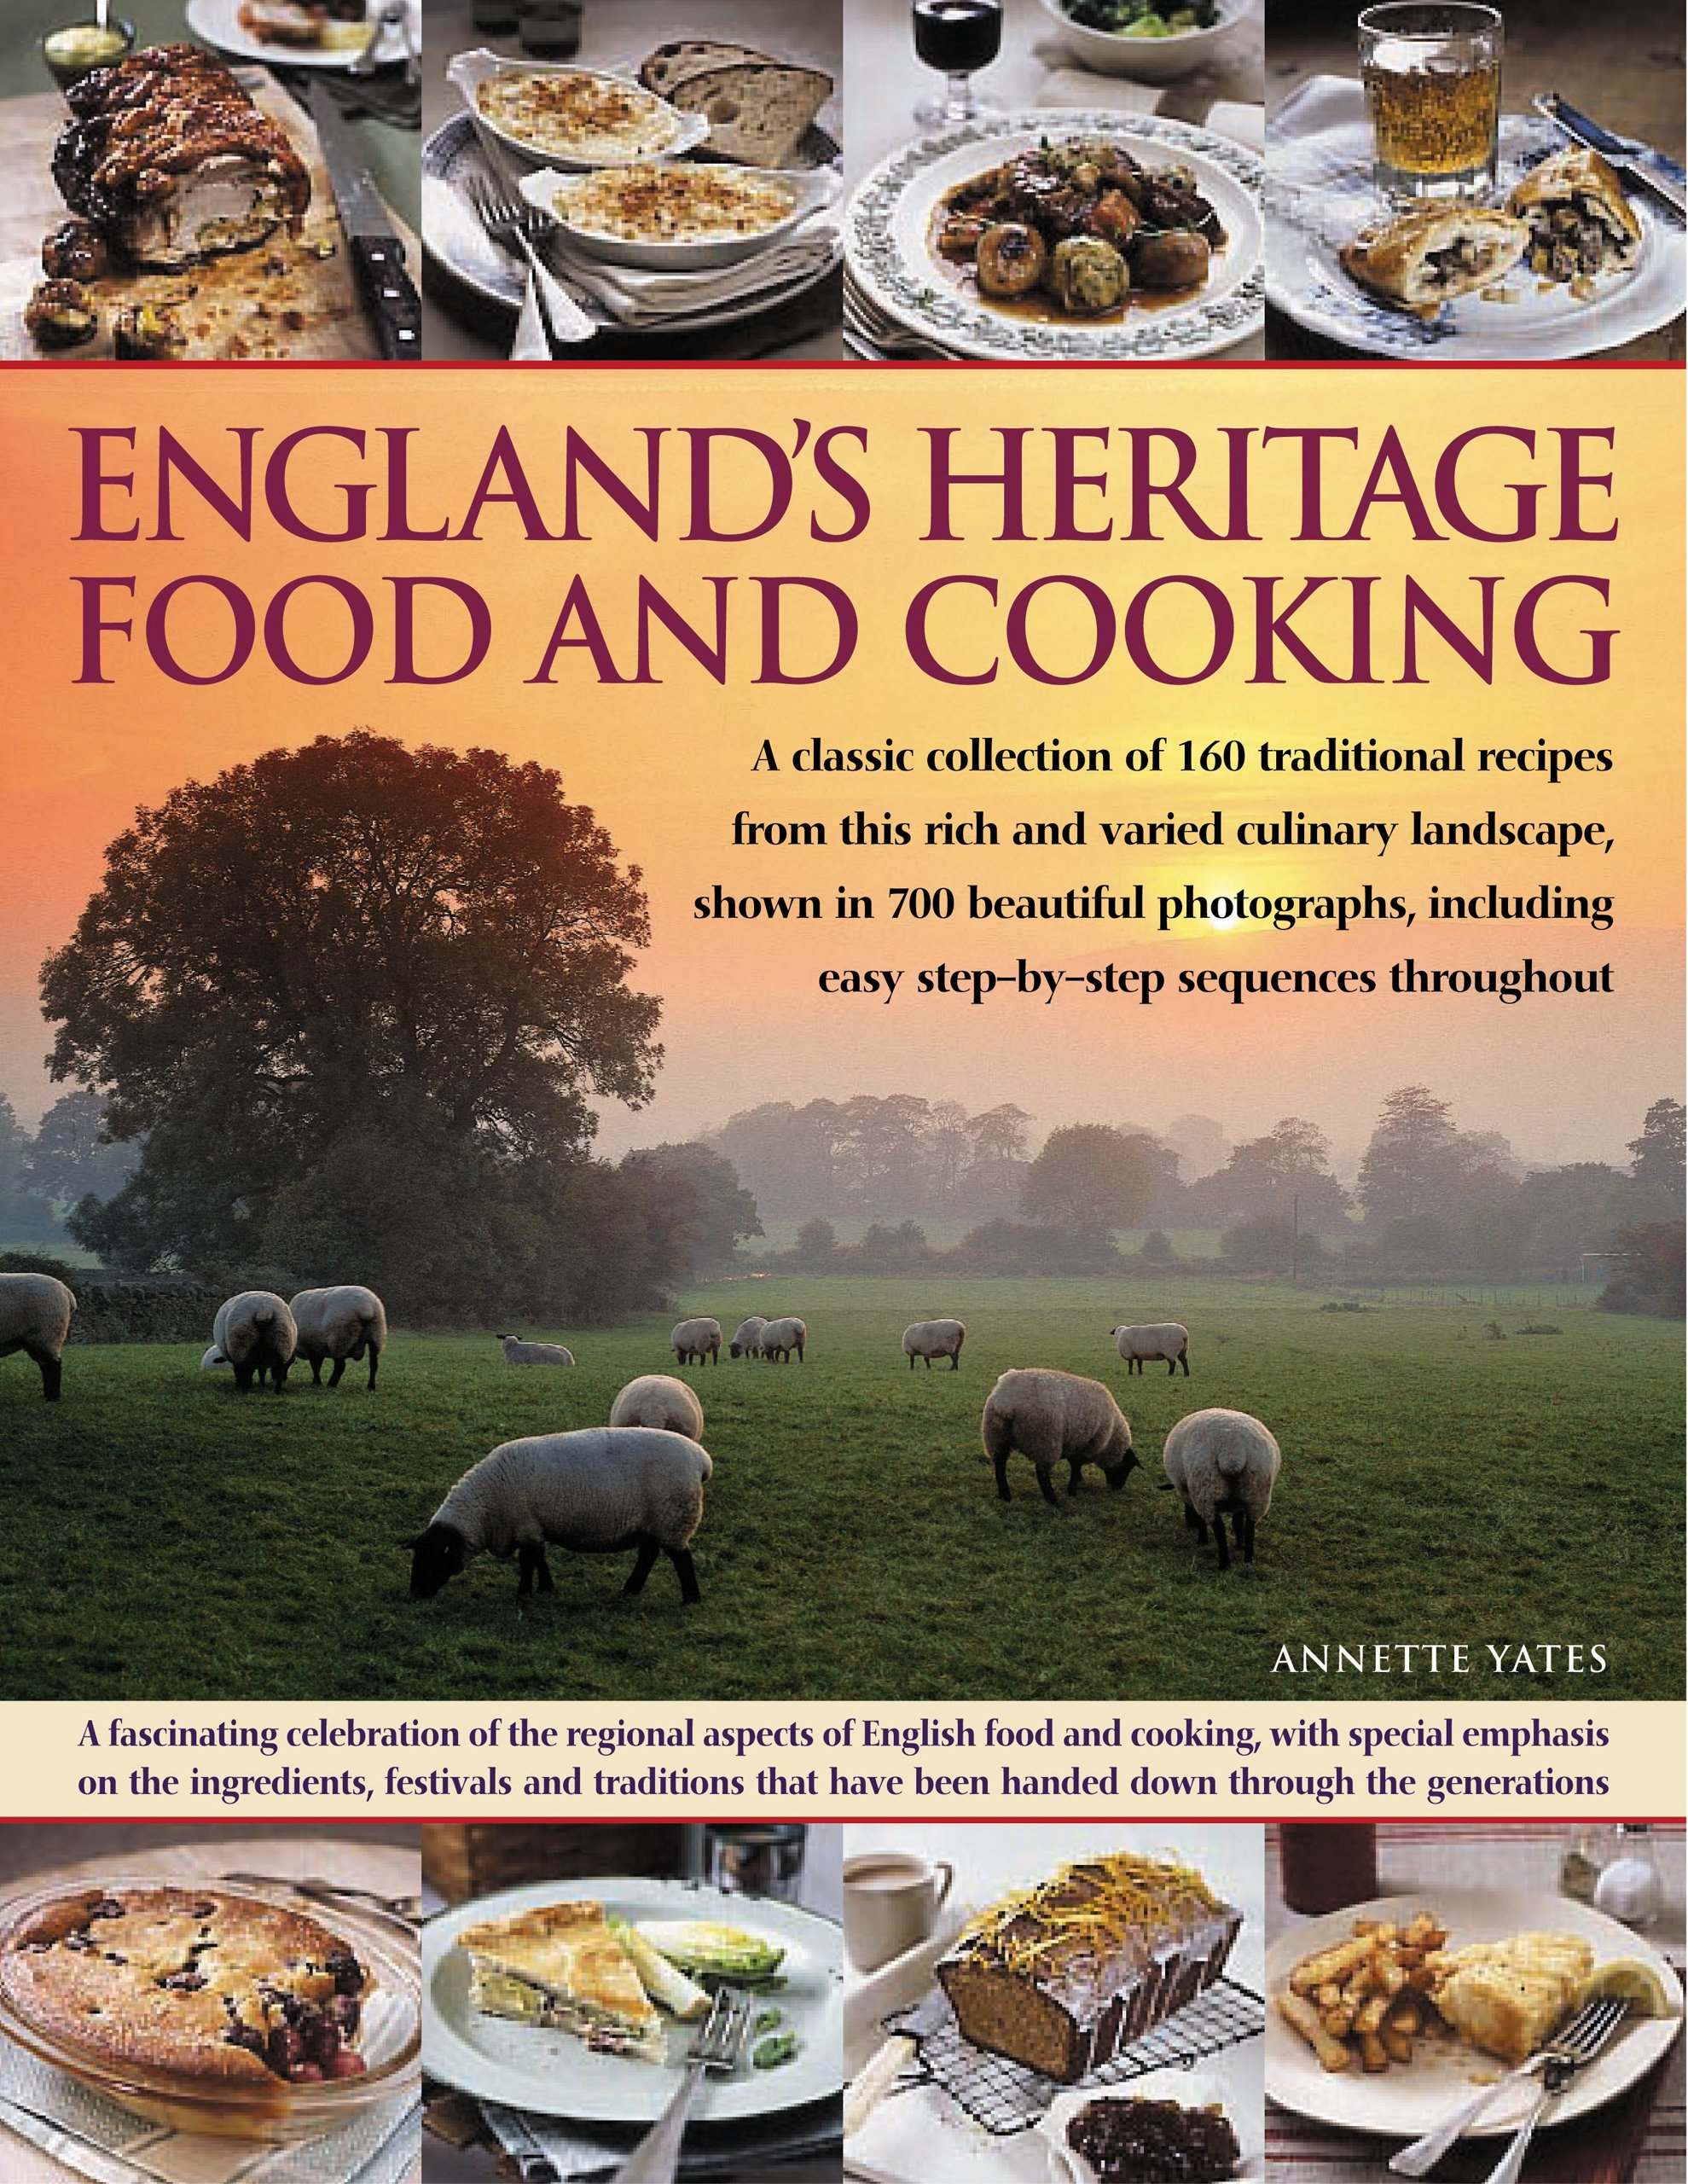 Englands heritage food and cooking a classic collection of 160 englands heritage food and cooking a classic collection of 160 traditional recipes from this rich and varied culinary landscape shown in 750 beautiful forumfinder Choice Image